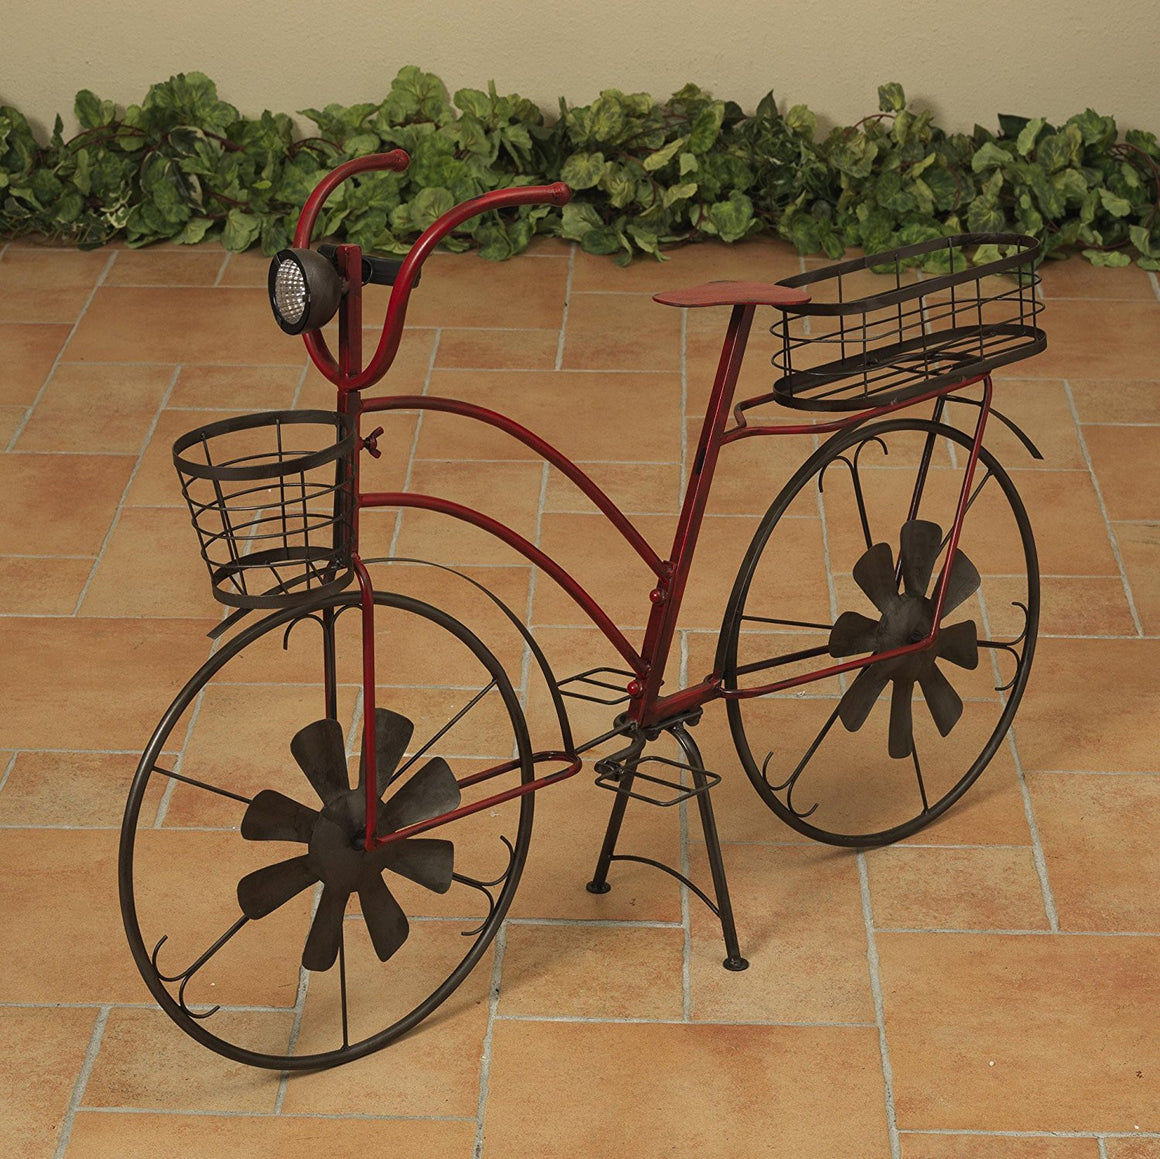 37 Inch Solar Lighted Metal Bicycle Planter Stand - Indoor / Outdoor Use